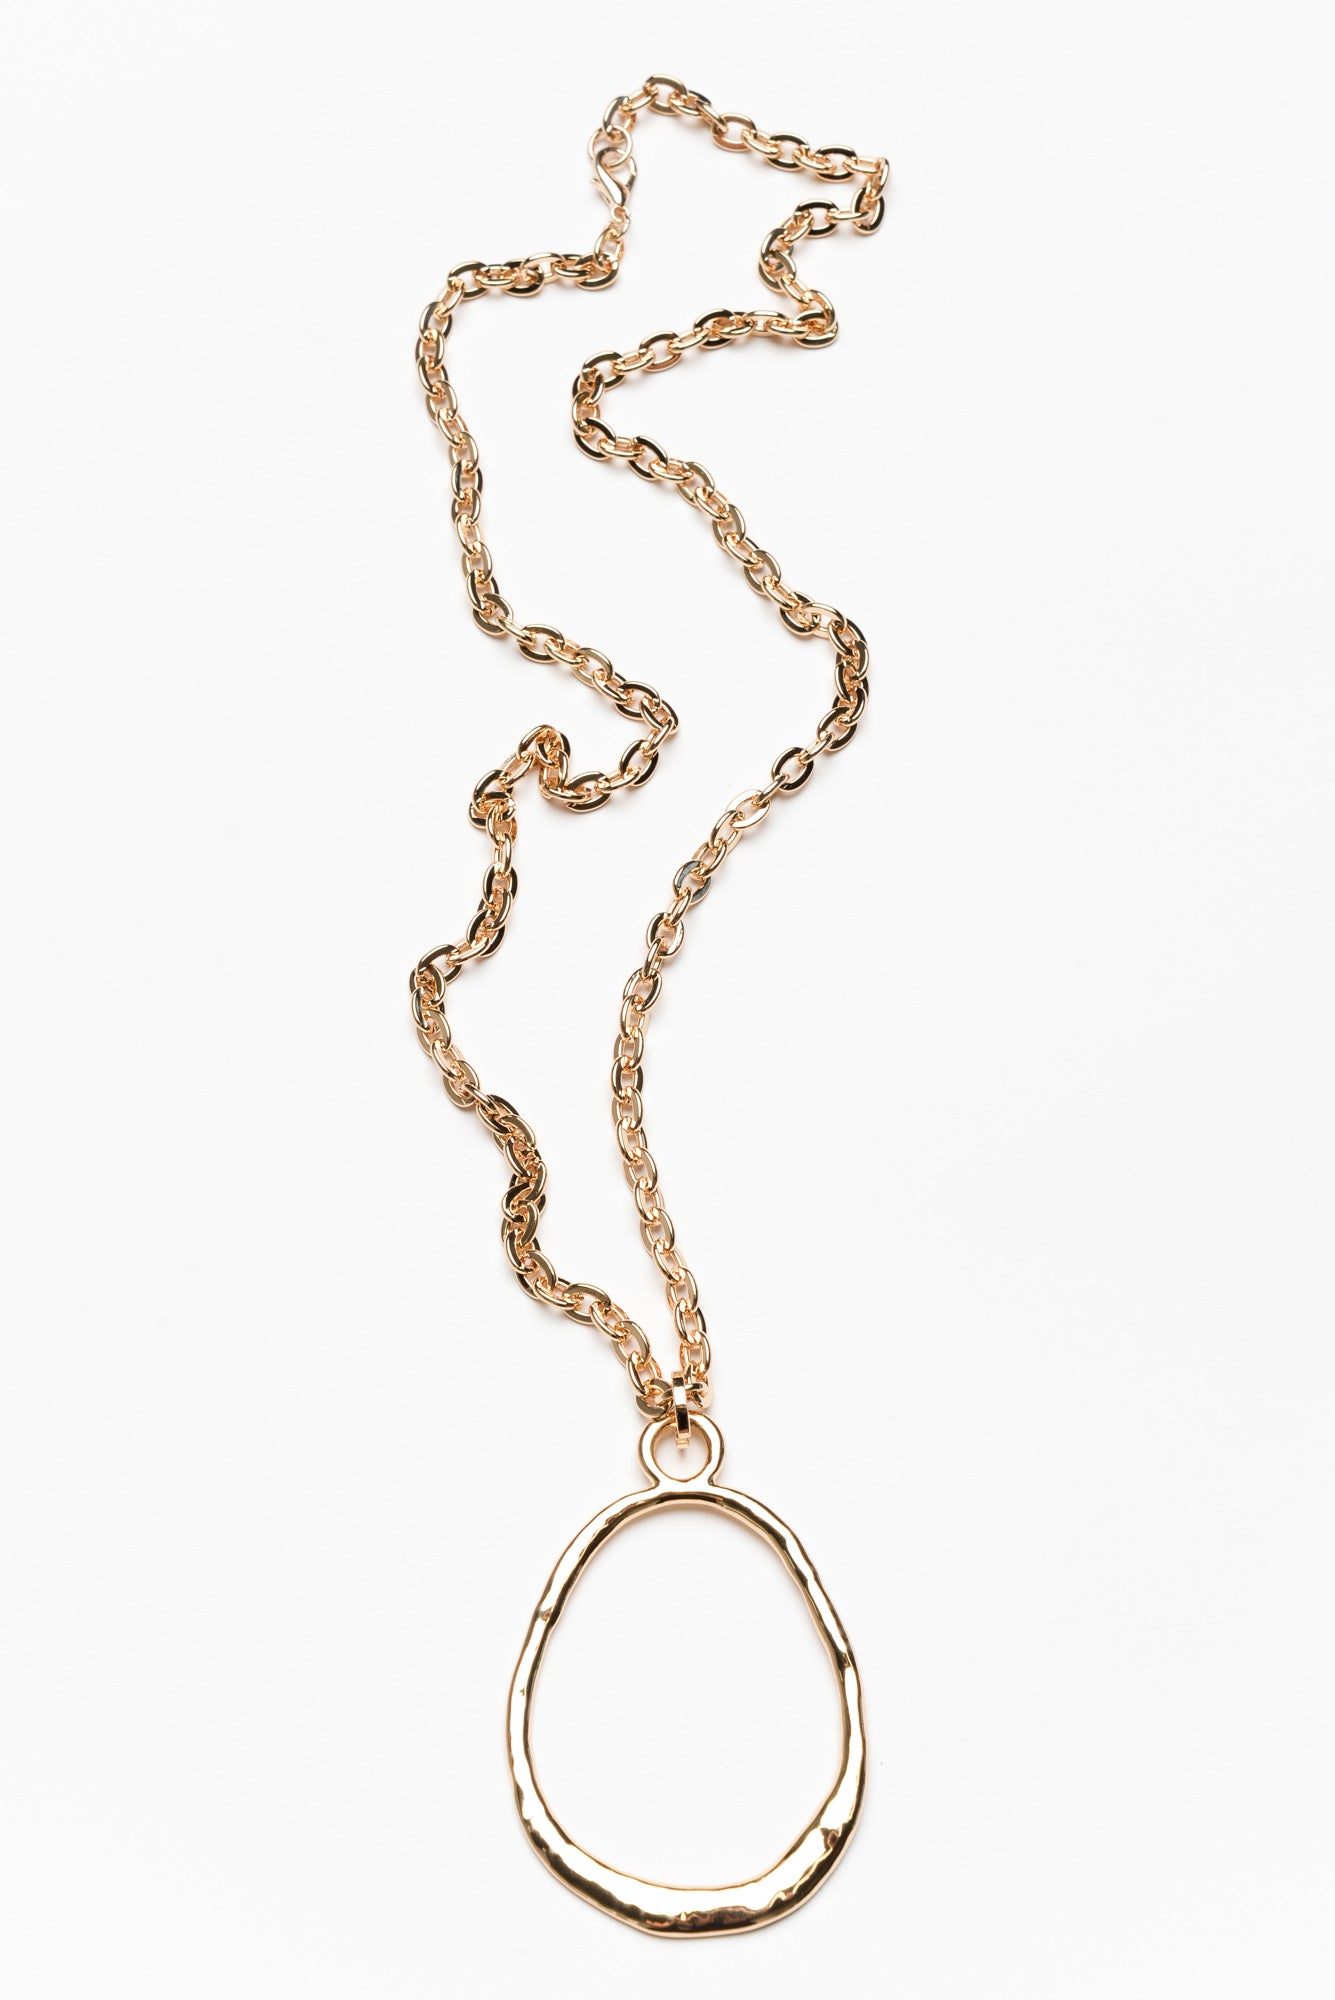 Cora Gold Oval Chain Pendant Necklace